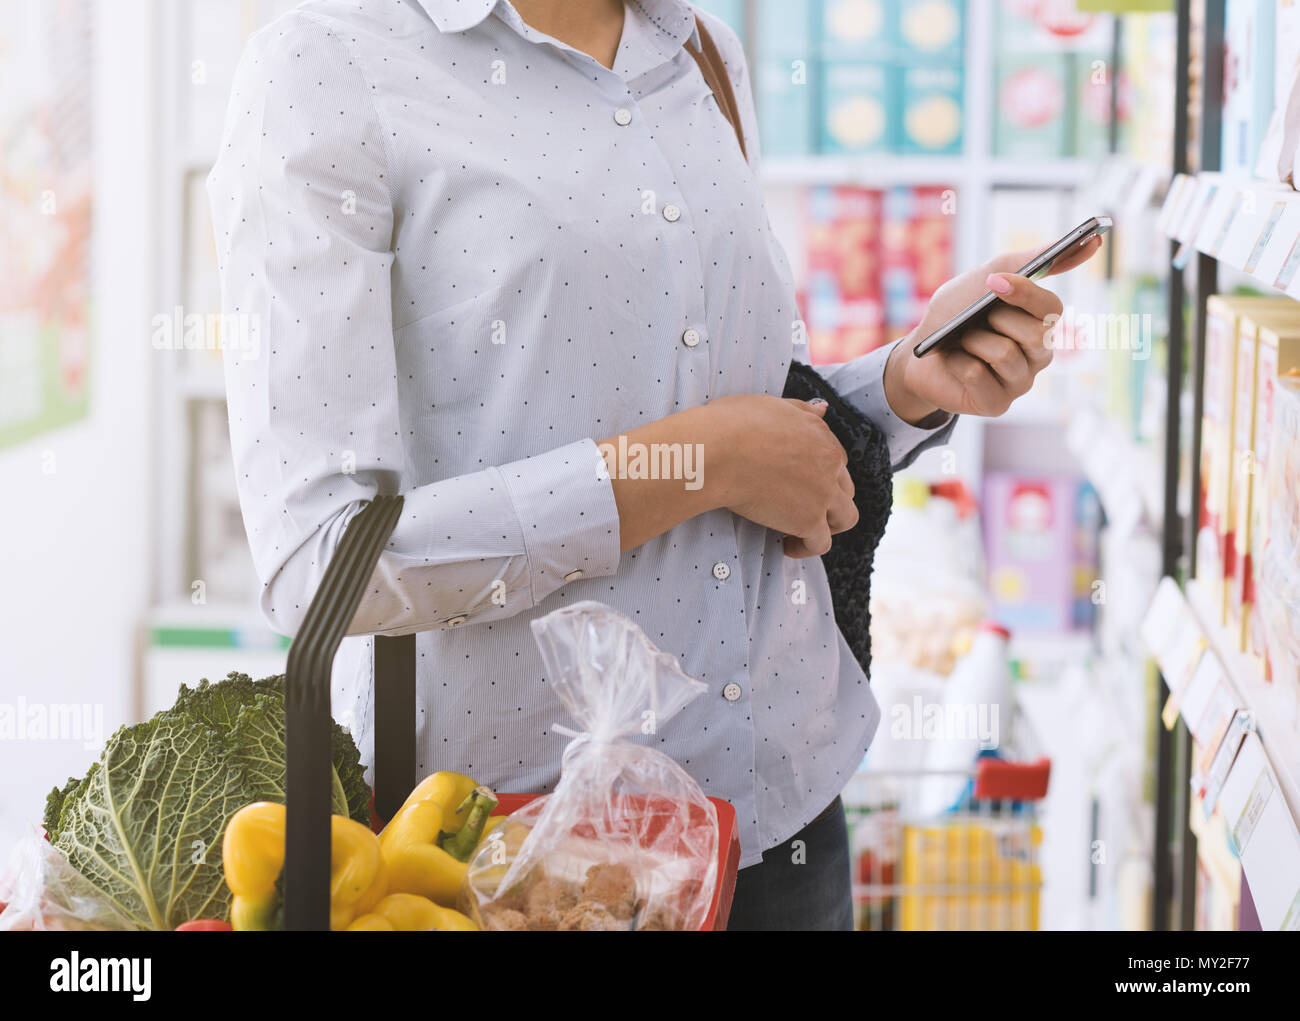 Young woman shopping at the store, she is using a smartphone and holding a shopping basket - Stock Image